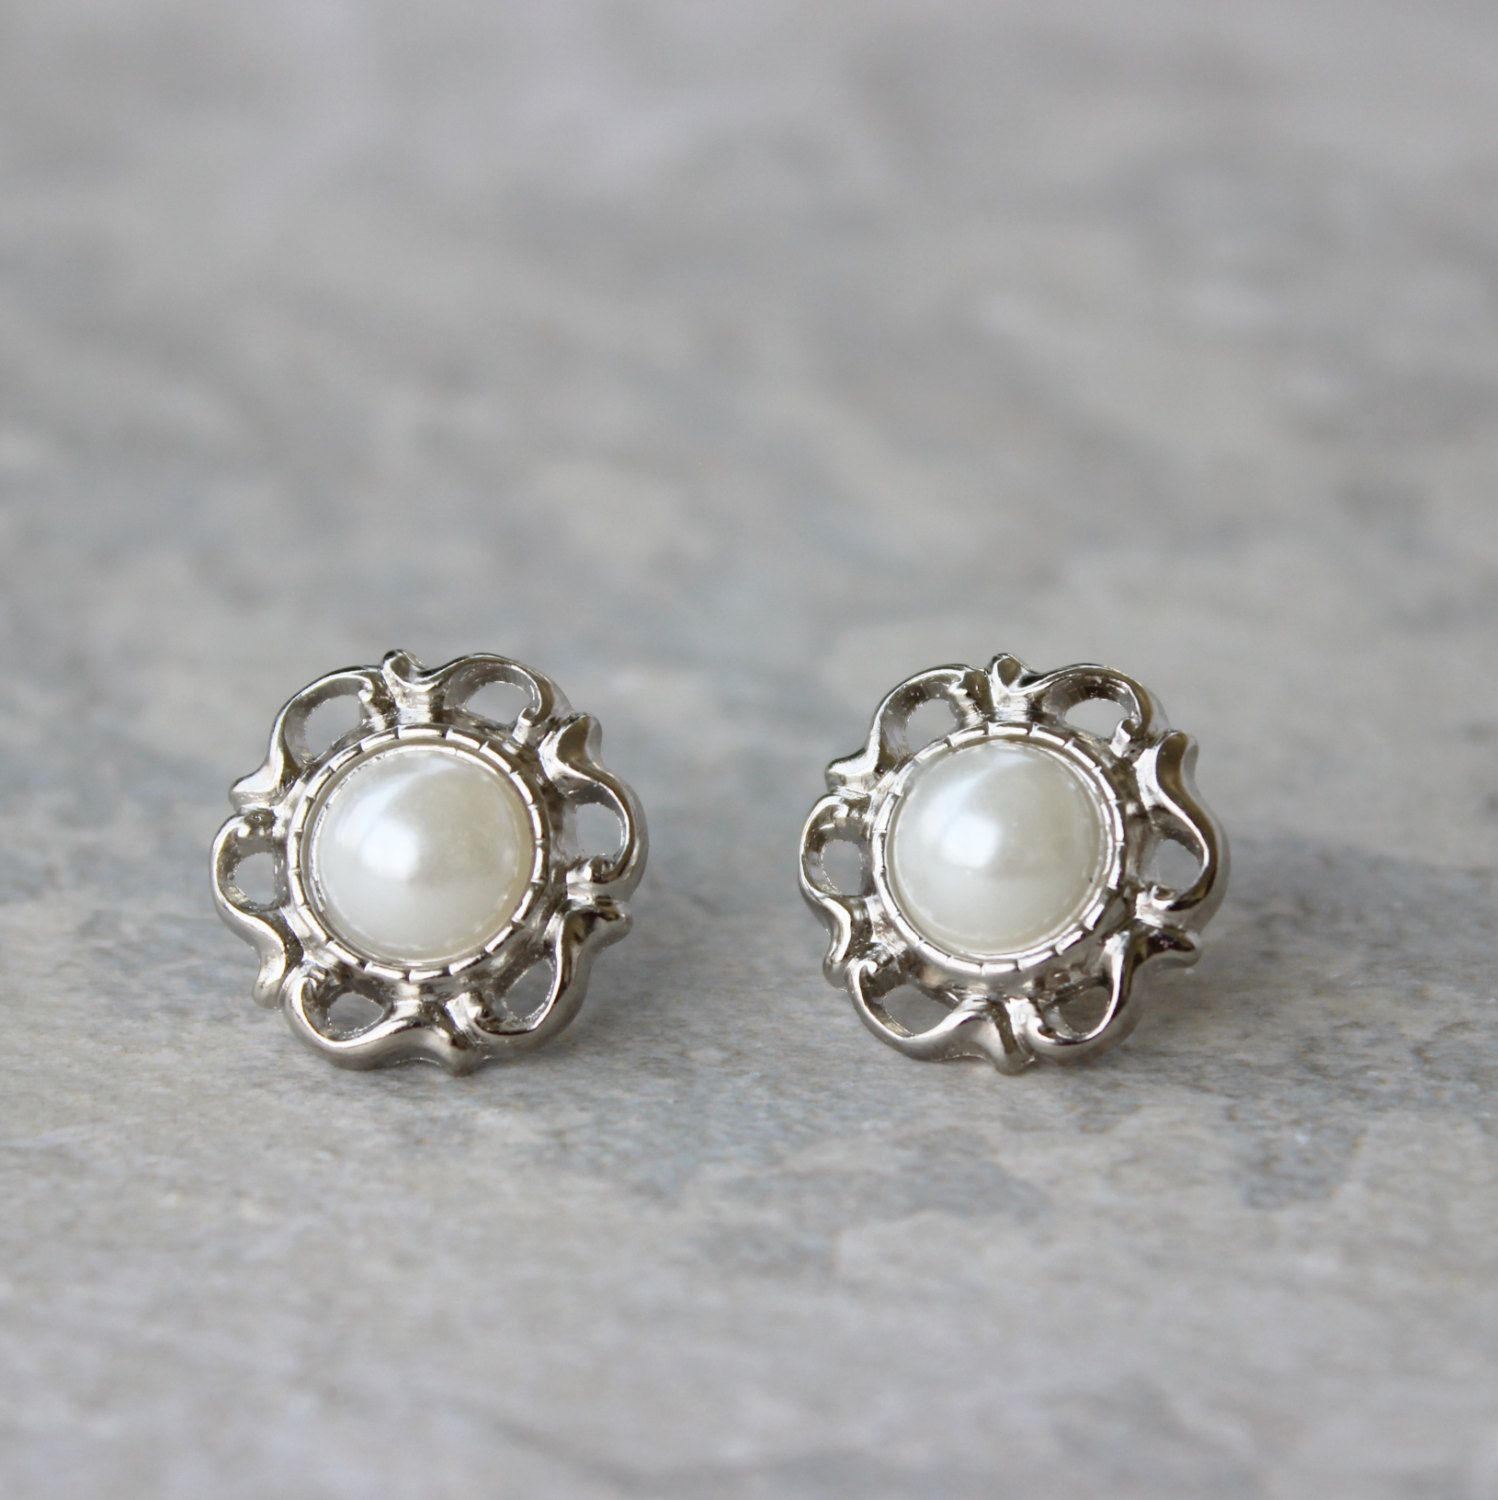 Pearl Bridesmaid Earrings Wedding Jewelry Inexpensive Filigree Silver And White